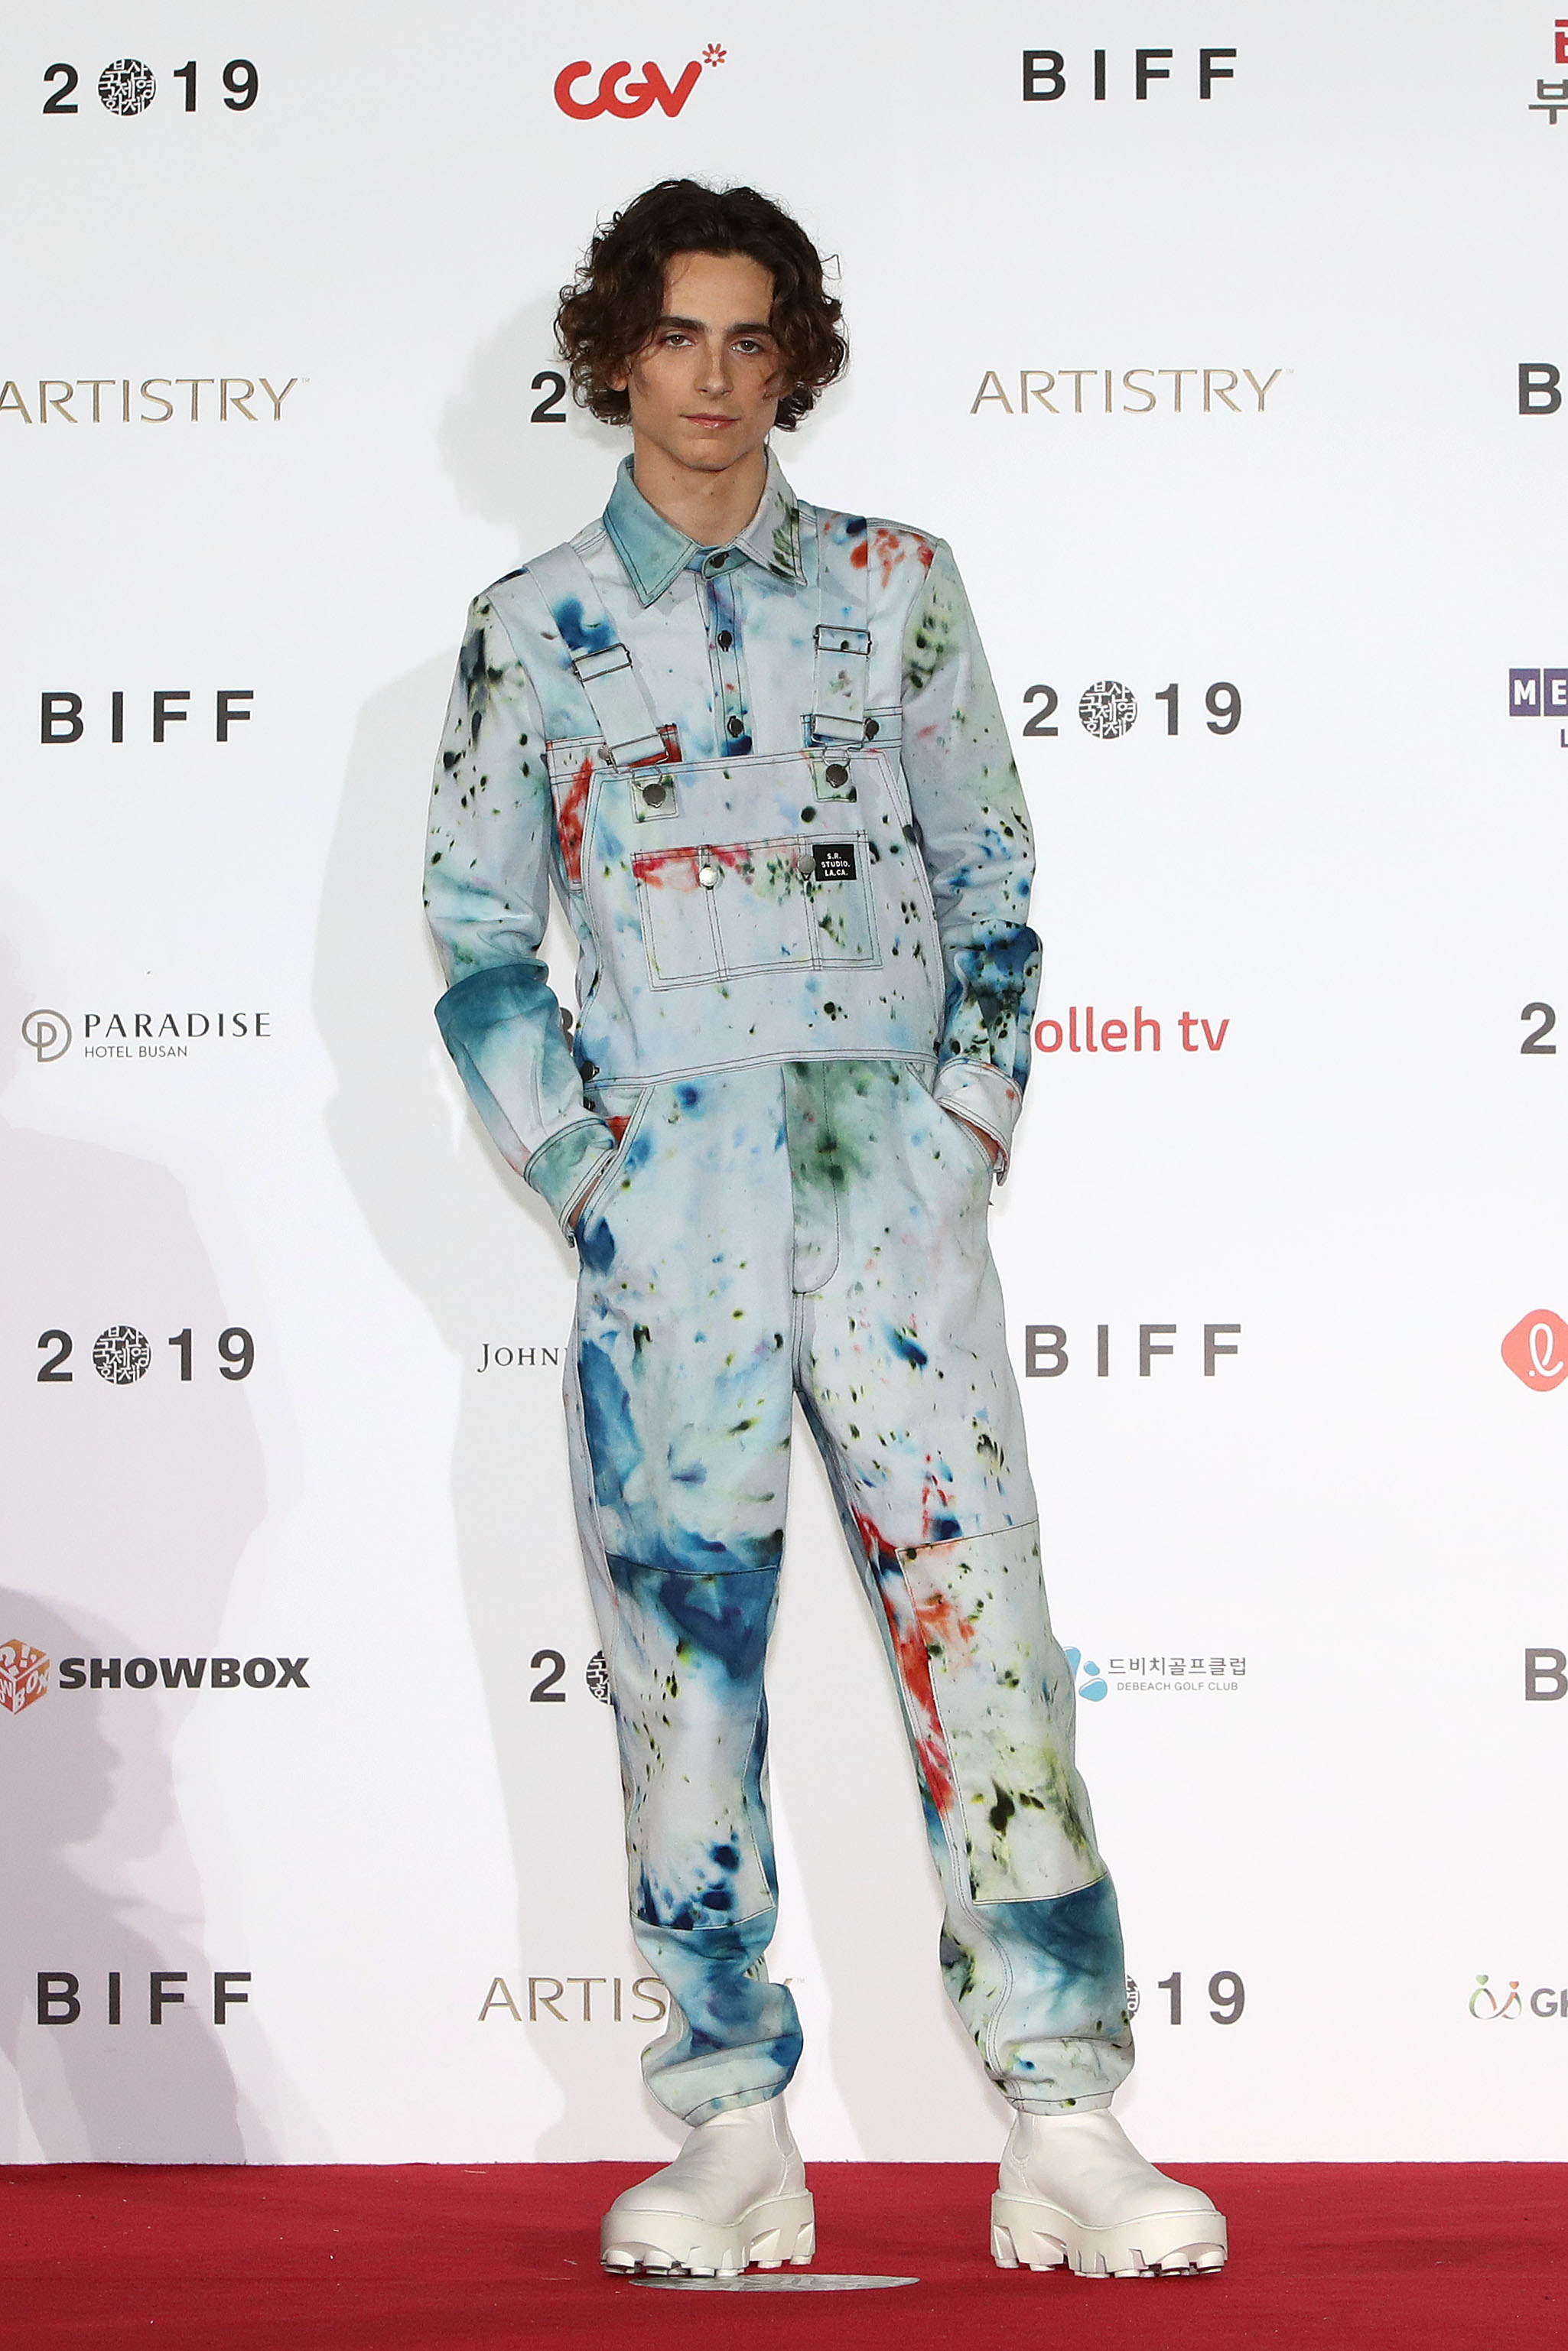 Timothée wears splatter-painted overalls with a matching long sleeve button down